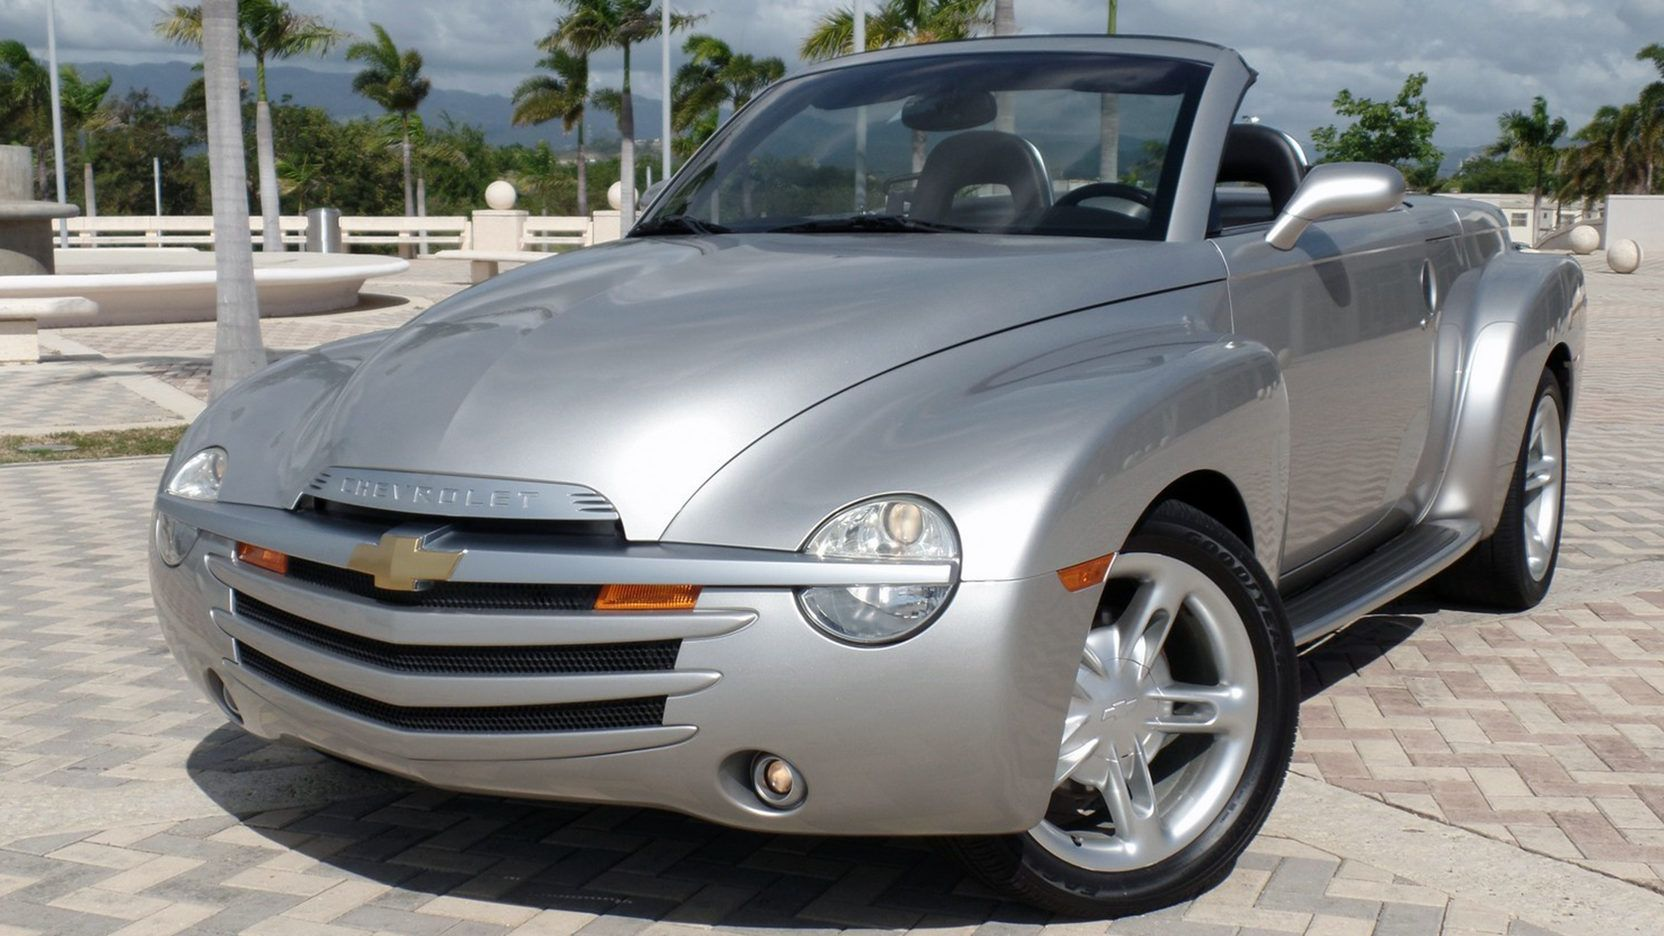 2004 Chevrolet Ssr 1 Print Image With Images Chevrolet Ssr